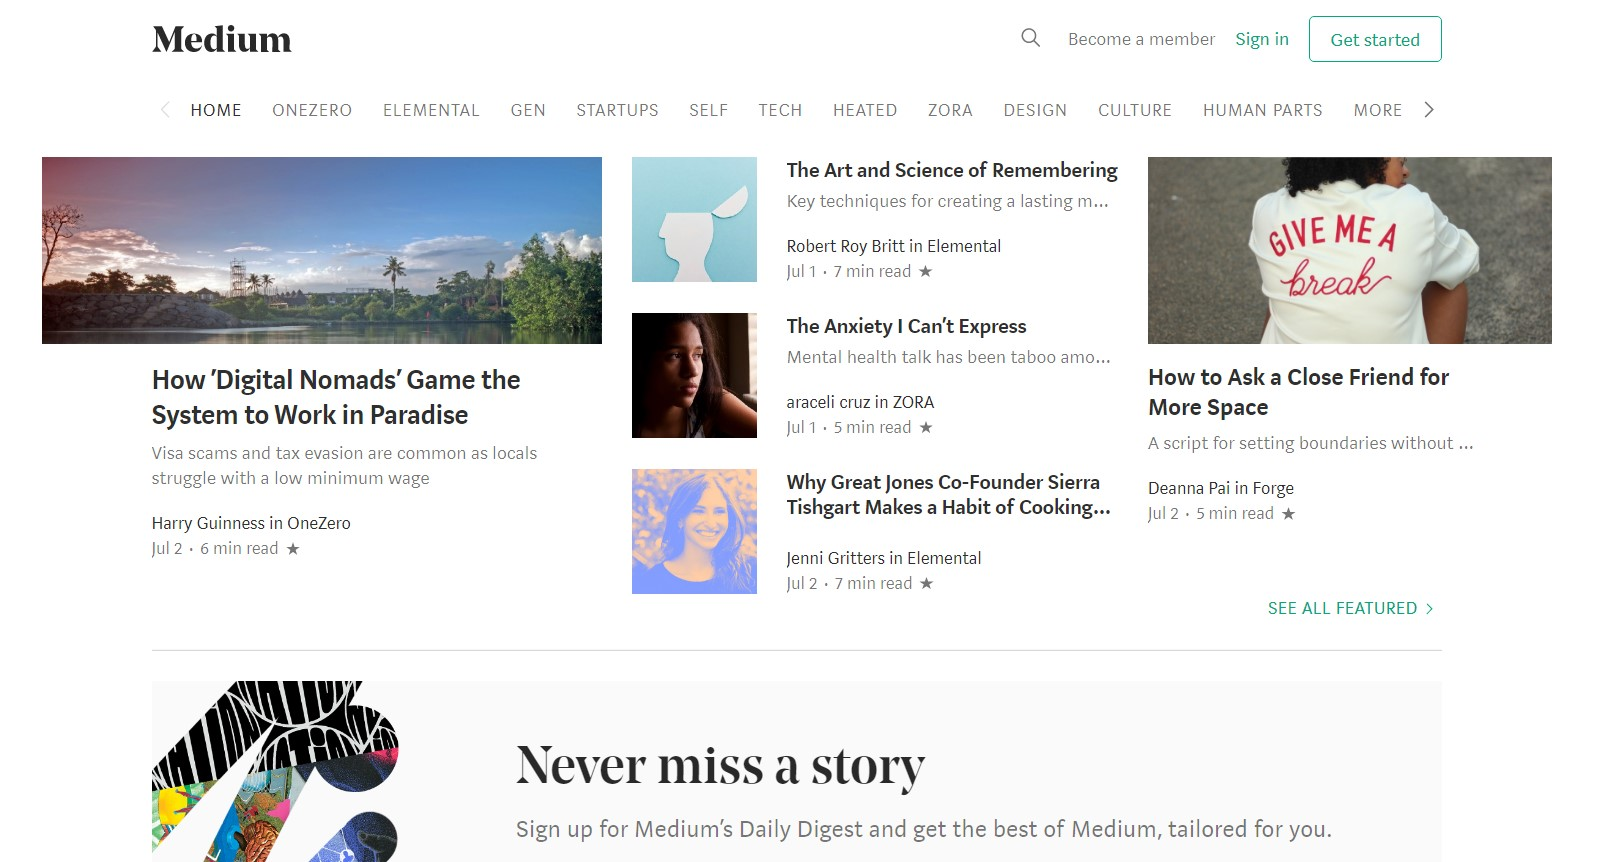 Medium does a great job at providing a simple blogging platform for everyone